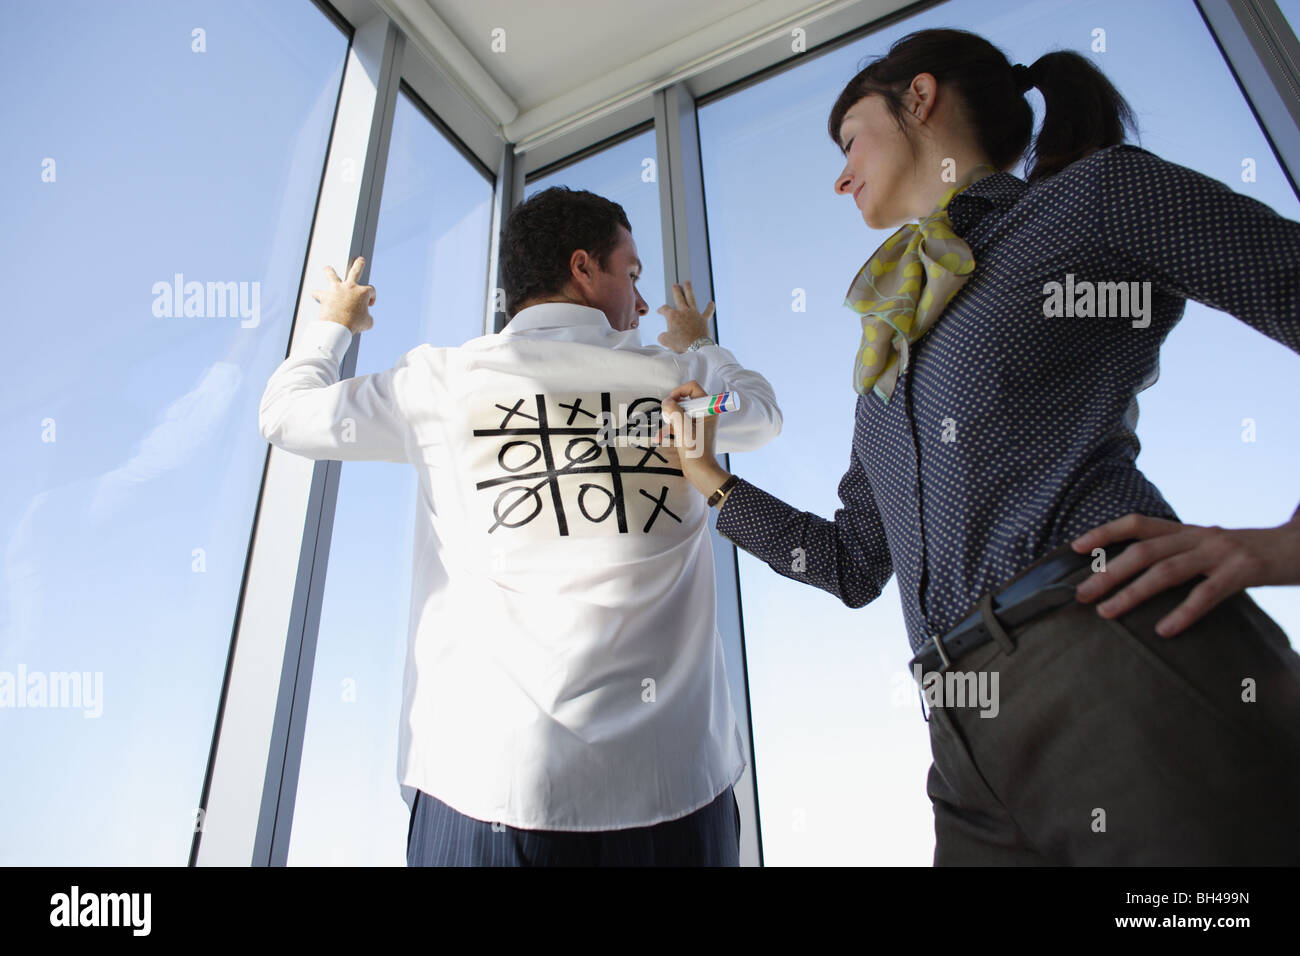 A woman playing Noughts and Crosses ( Tic Tac Toe ) on the back of a man's white business shirt - Stock Image